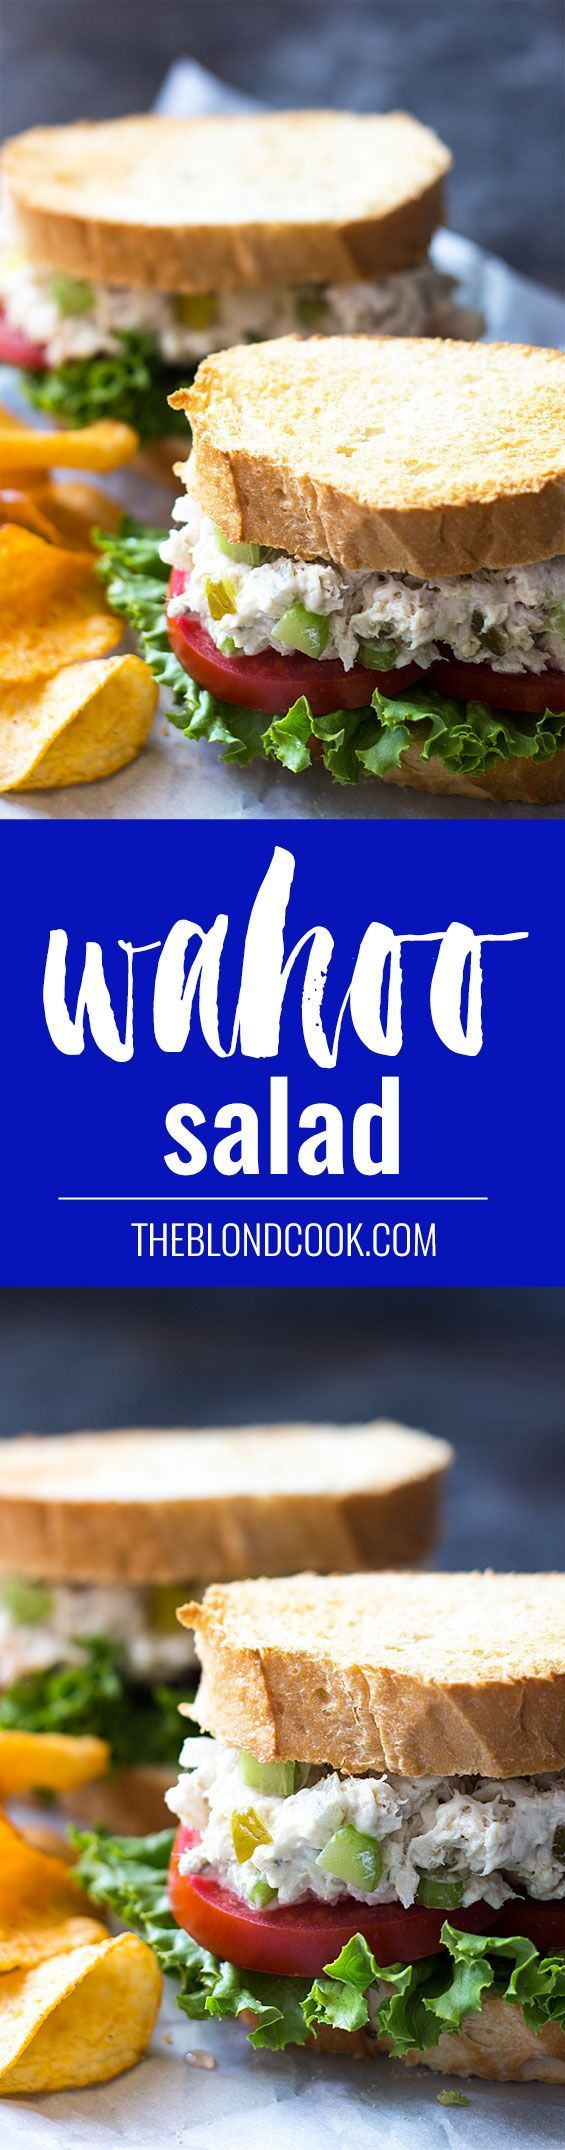 Wahoo Salad - A hearty salad made with fresh wahoo - Any firm white fish will work with this recipe!